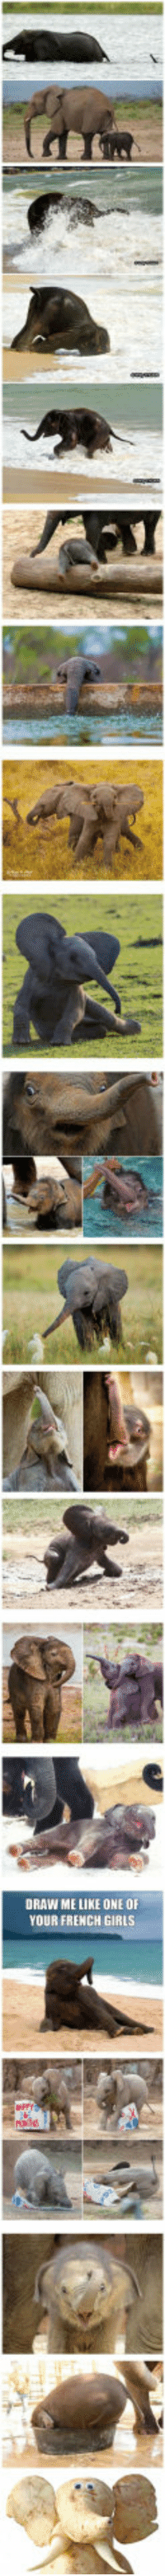 """<p><a href=""""http://laughoutloud-club.tumblr.com/post/160437599742/baby-elephants-that-will-instantly-make-you-smile"""" class=""""tumblr_blog"""">laughoutloud-club</a>:</p>  <blockquote><p>Baby Elephants That Will Instantly Make You Smile</p></blockquote>: DRAW ME LIKE ONE OF  YOUR FRENCH GIRLS <p><a href=""""http://laughoutloud-club.tumblr.com/post/160437599742/baby-elephants-that-will-instantly-make-you-smile"""" class=""""tumblr_blog"""">laughoutloud-club</a>:</p>  <blockquote><p>Baby Elephants That Will Instantly Make You Smile</p></blockquote>"""